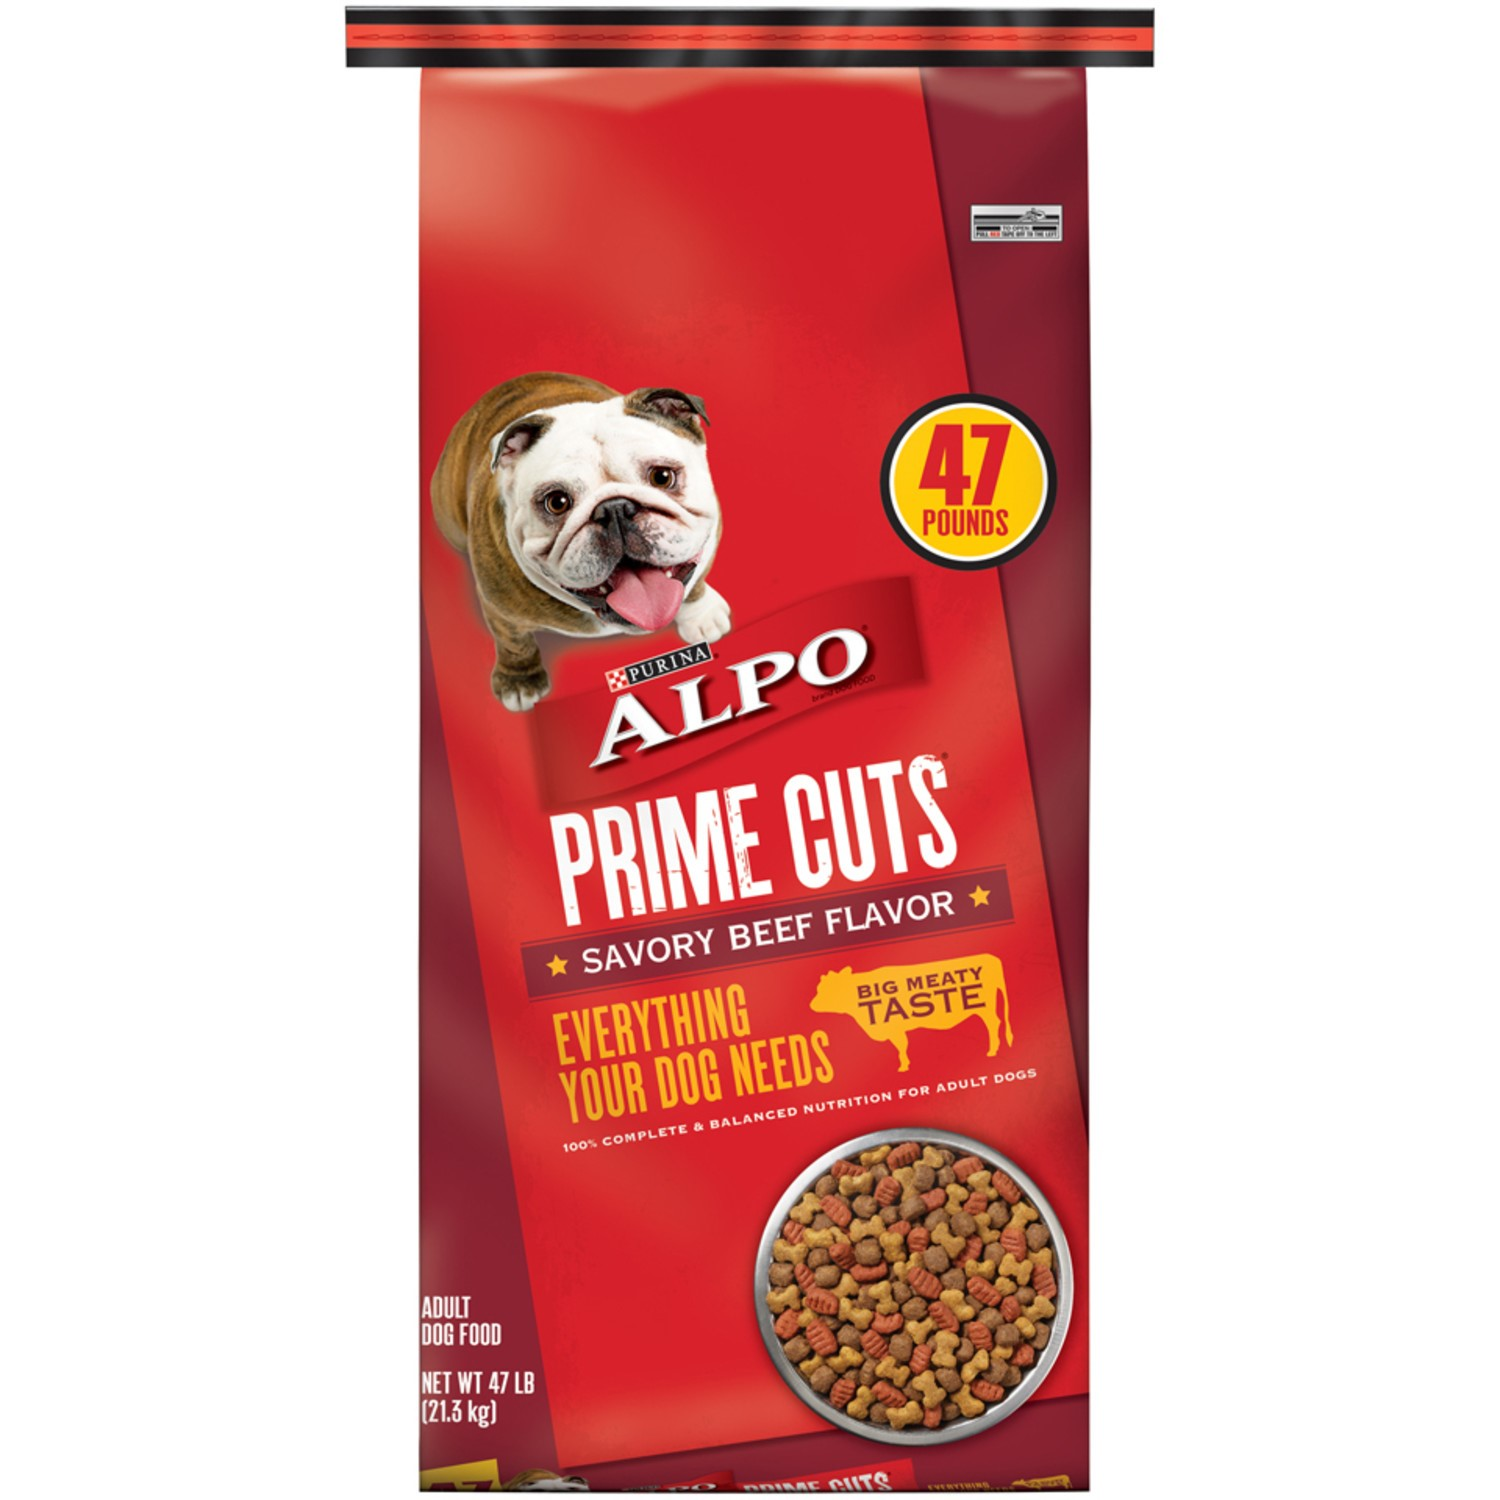 Purina Alpo Prime Cuts Savory Beef Flavor Dry Dog Food, 47 Lb.